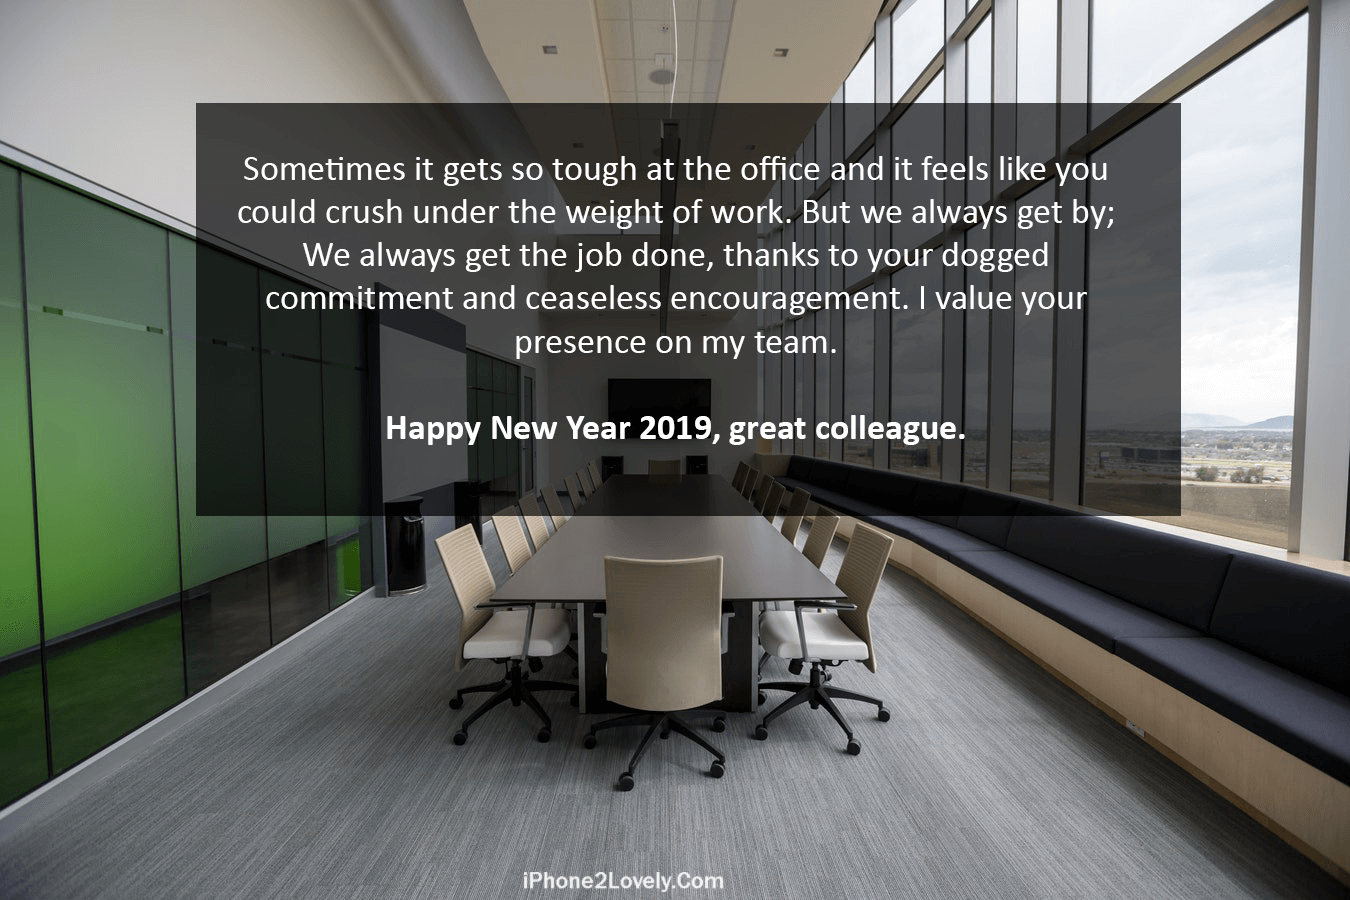 new year 2019 wishes for collegues and team members from boss